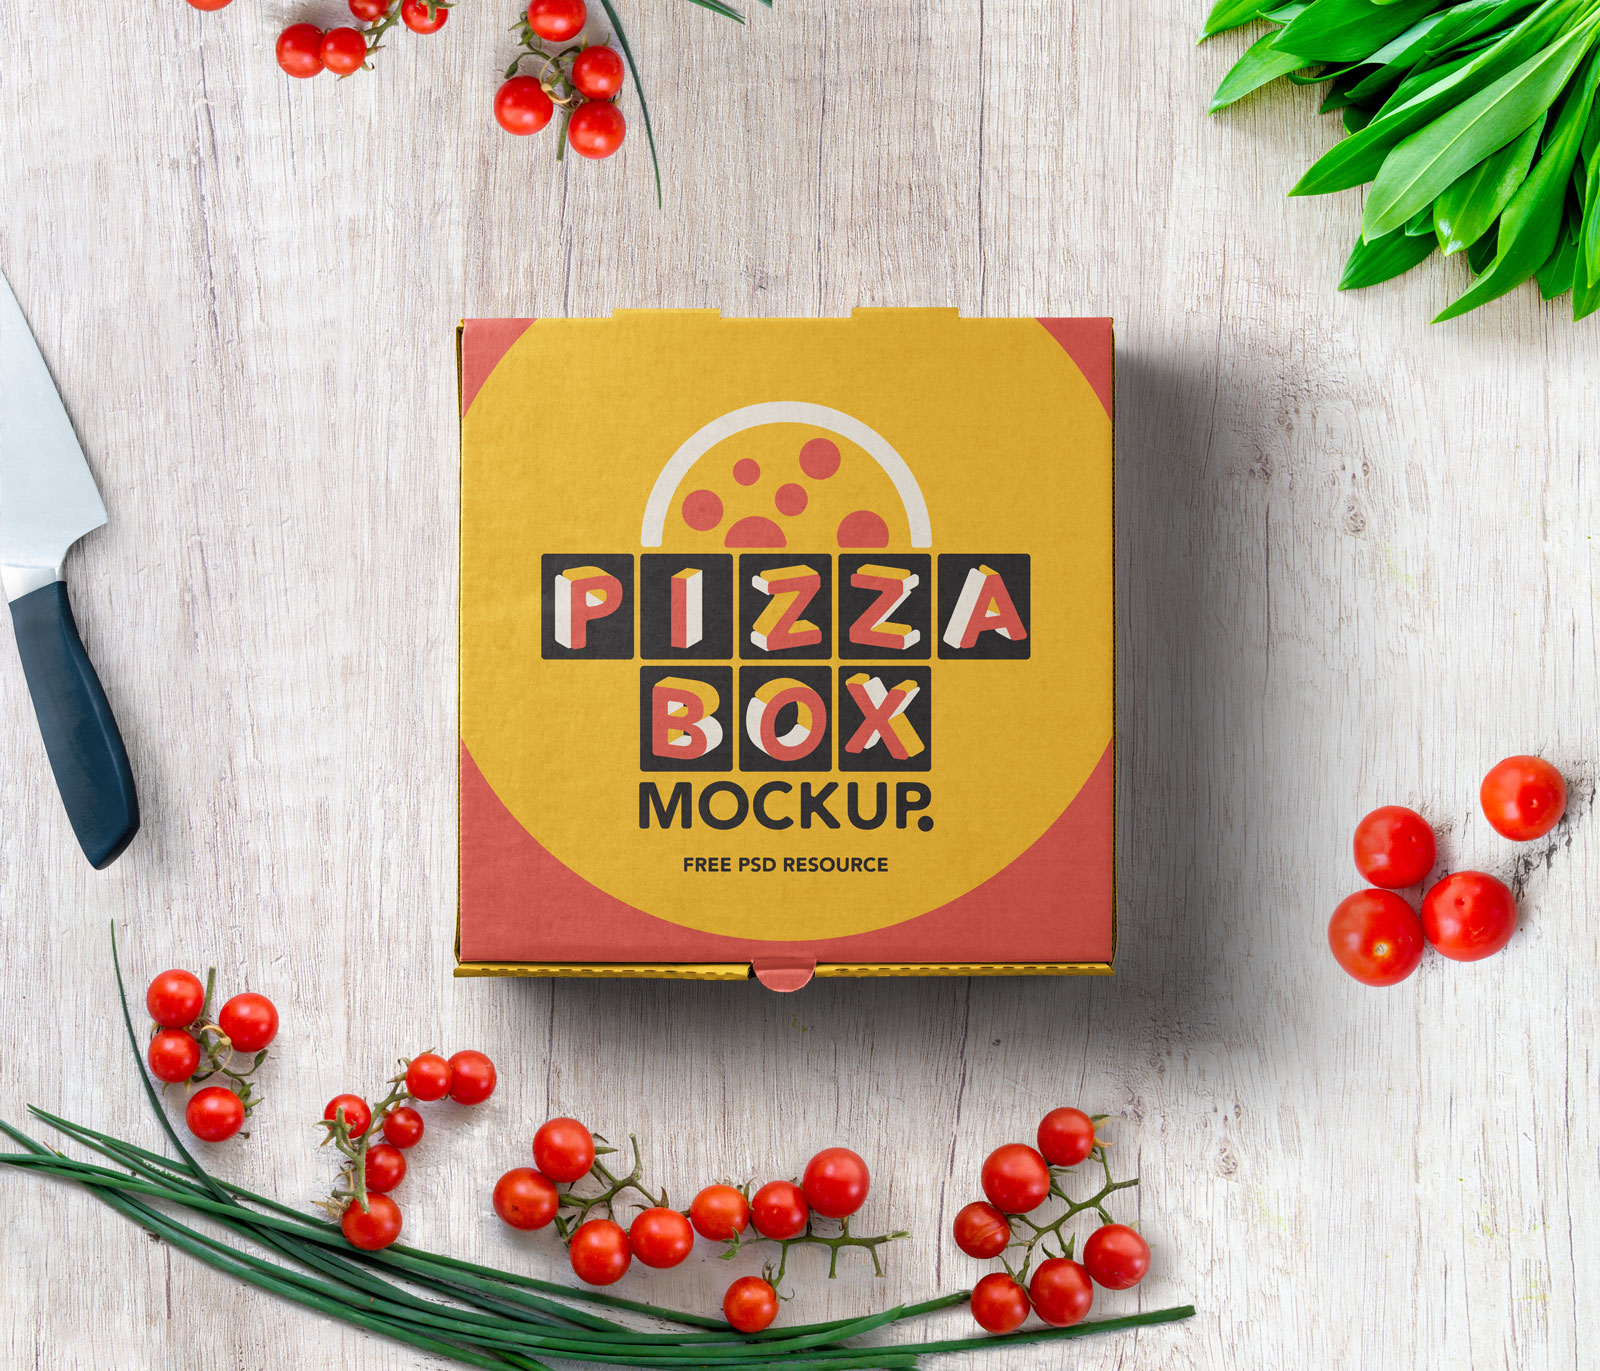 Free-Pizza-Box-Packaging-Mockup-PSD-Presentation